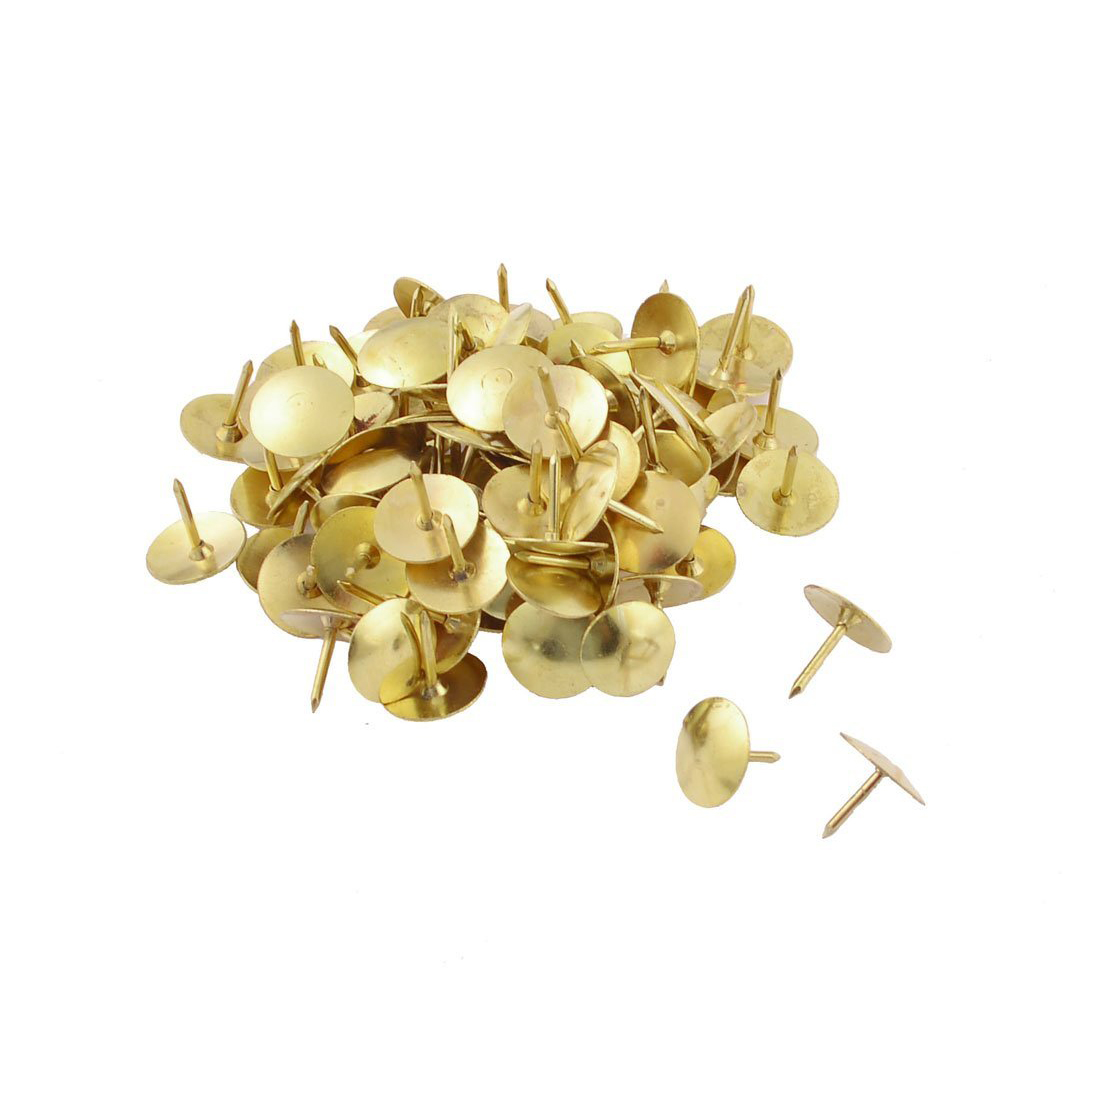 100 Pcs Pack Office Gold Tone Thumbtacks